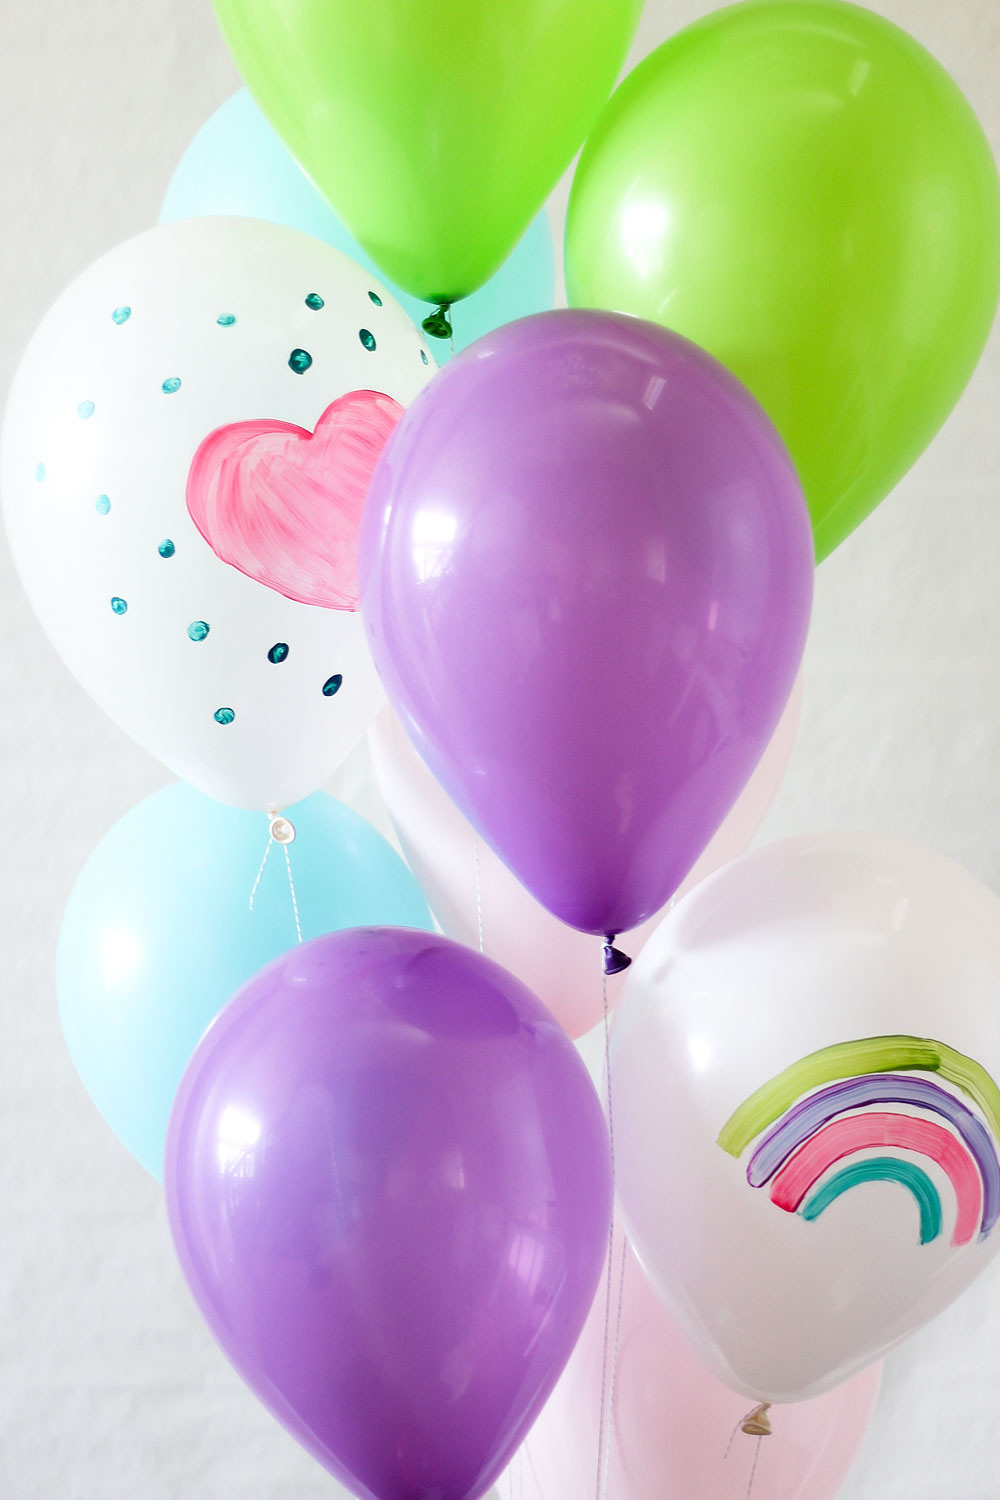 Balloons painted on by children